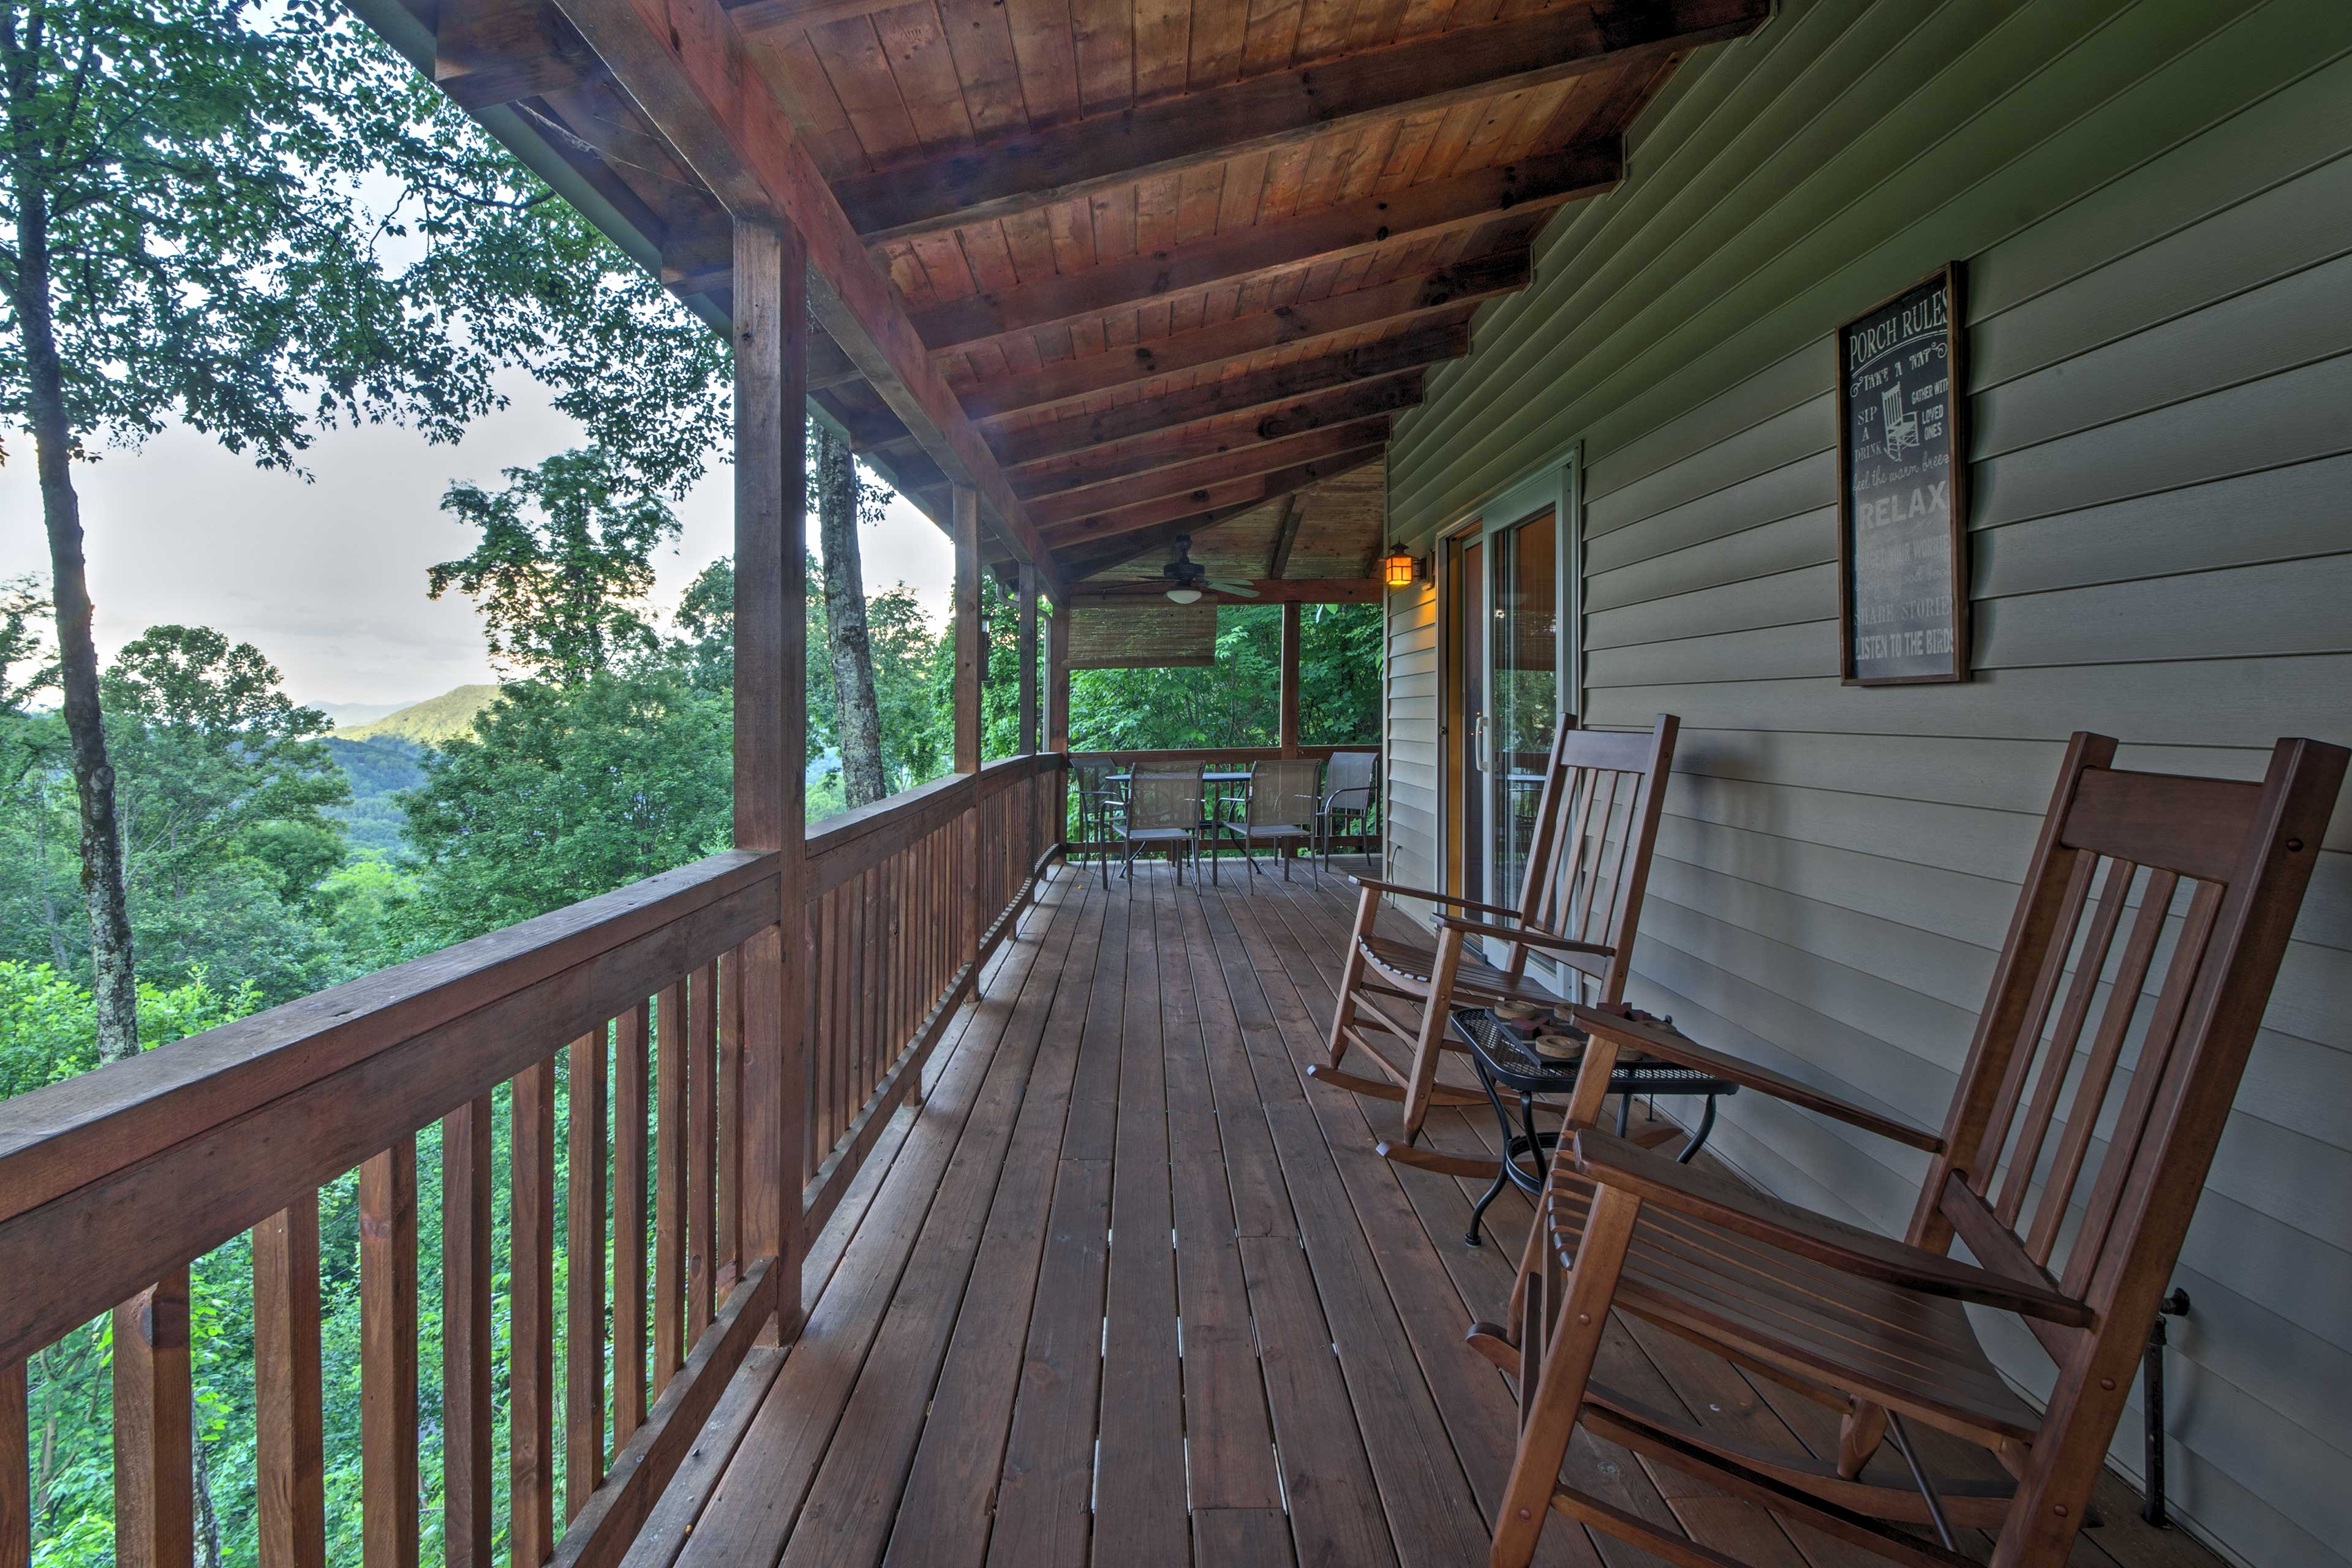 Start each morning with a fresh coffee on the deck.